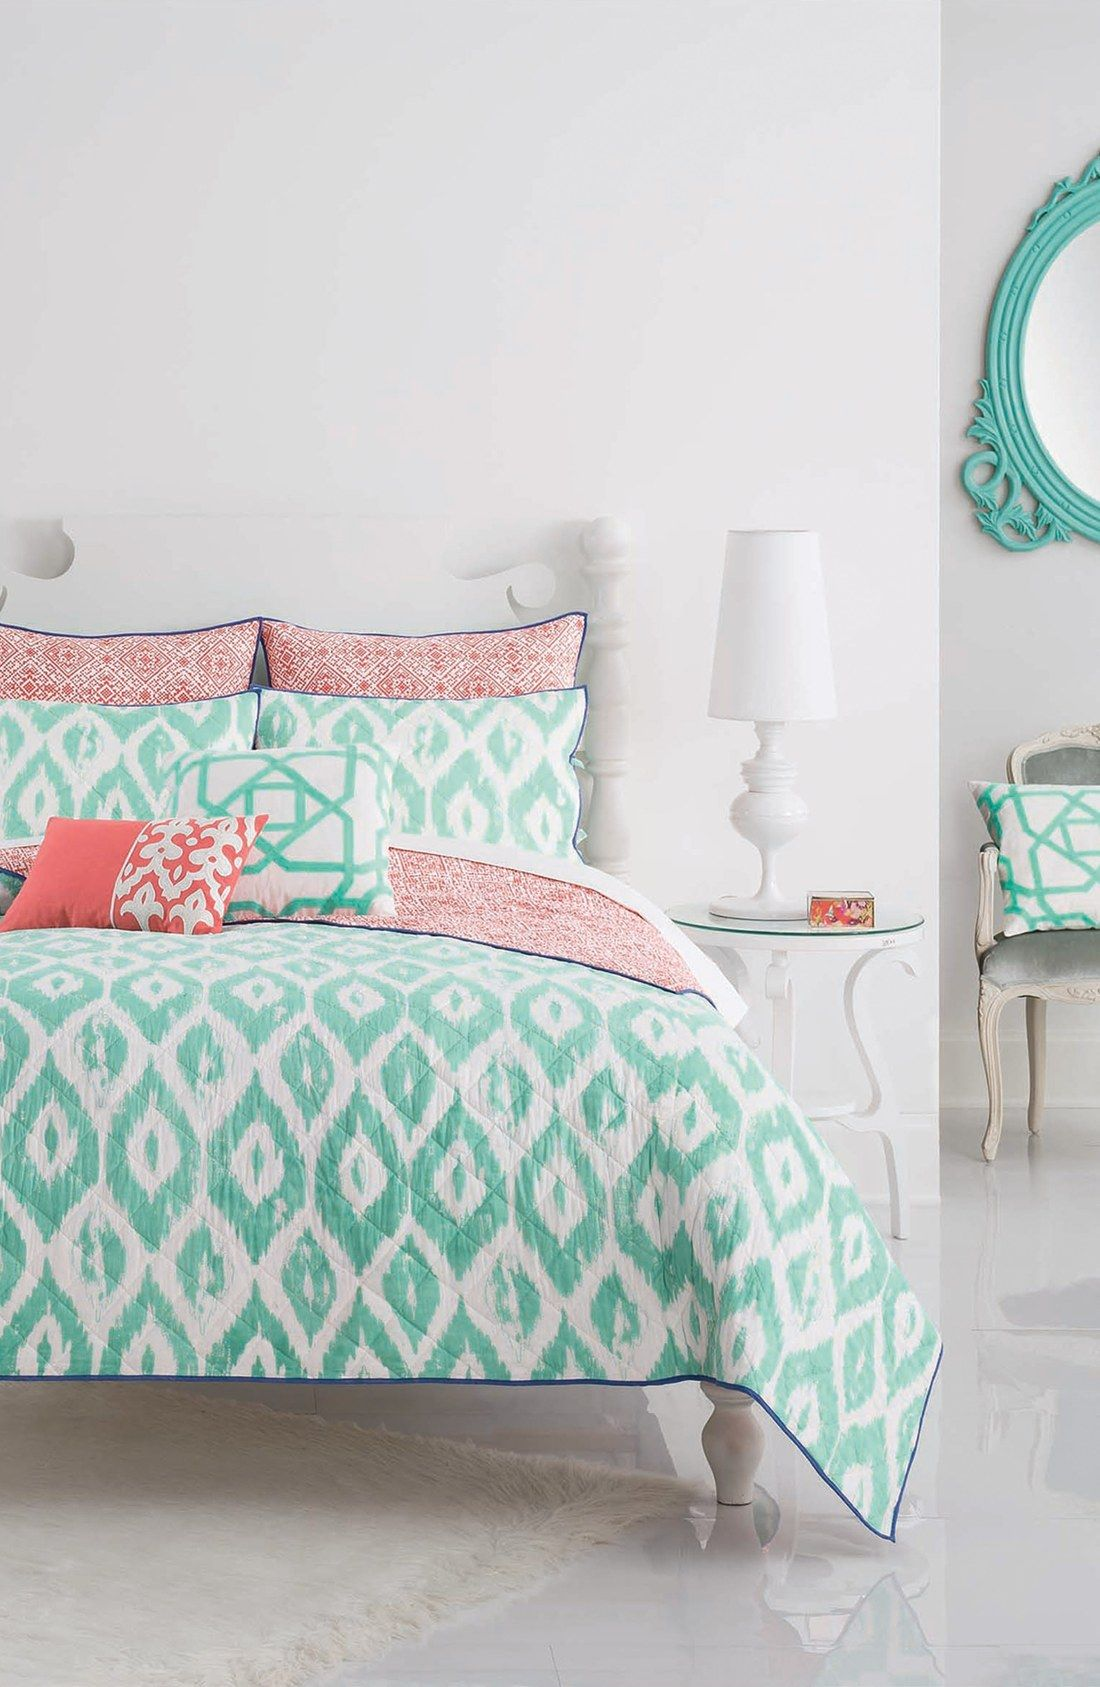 Loving The Turquoise And Coral Bedding Paired Together For A Bright Fun Look In Bedroom